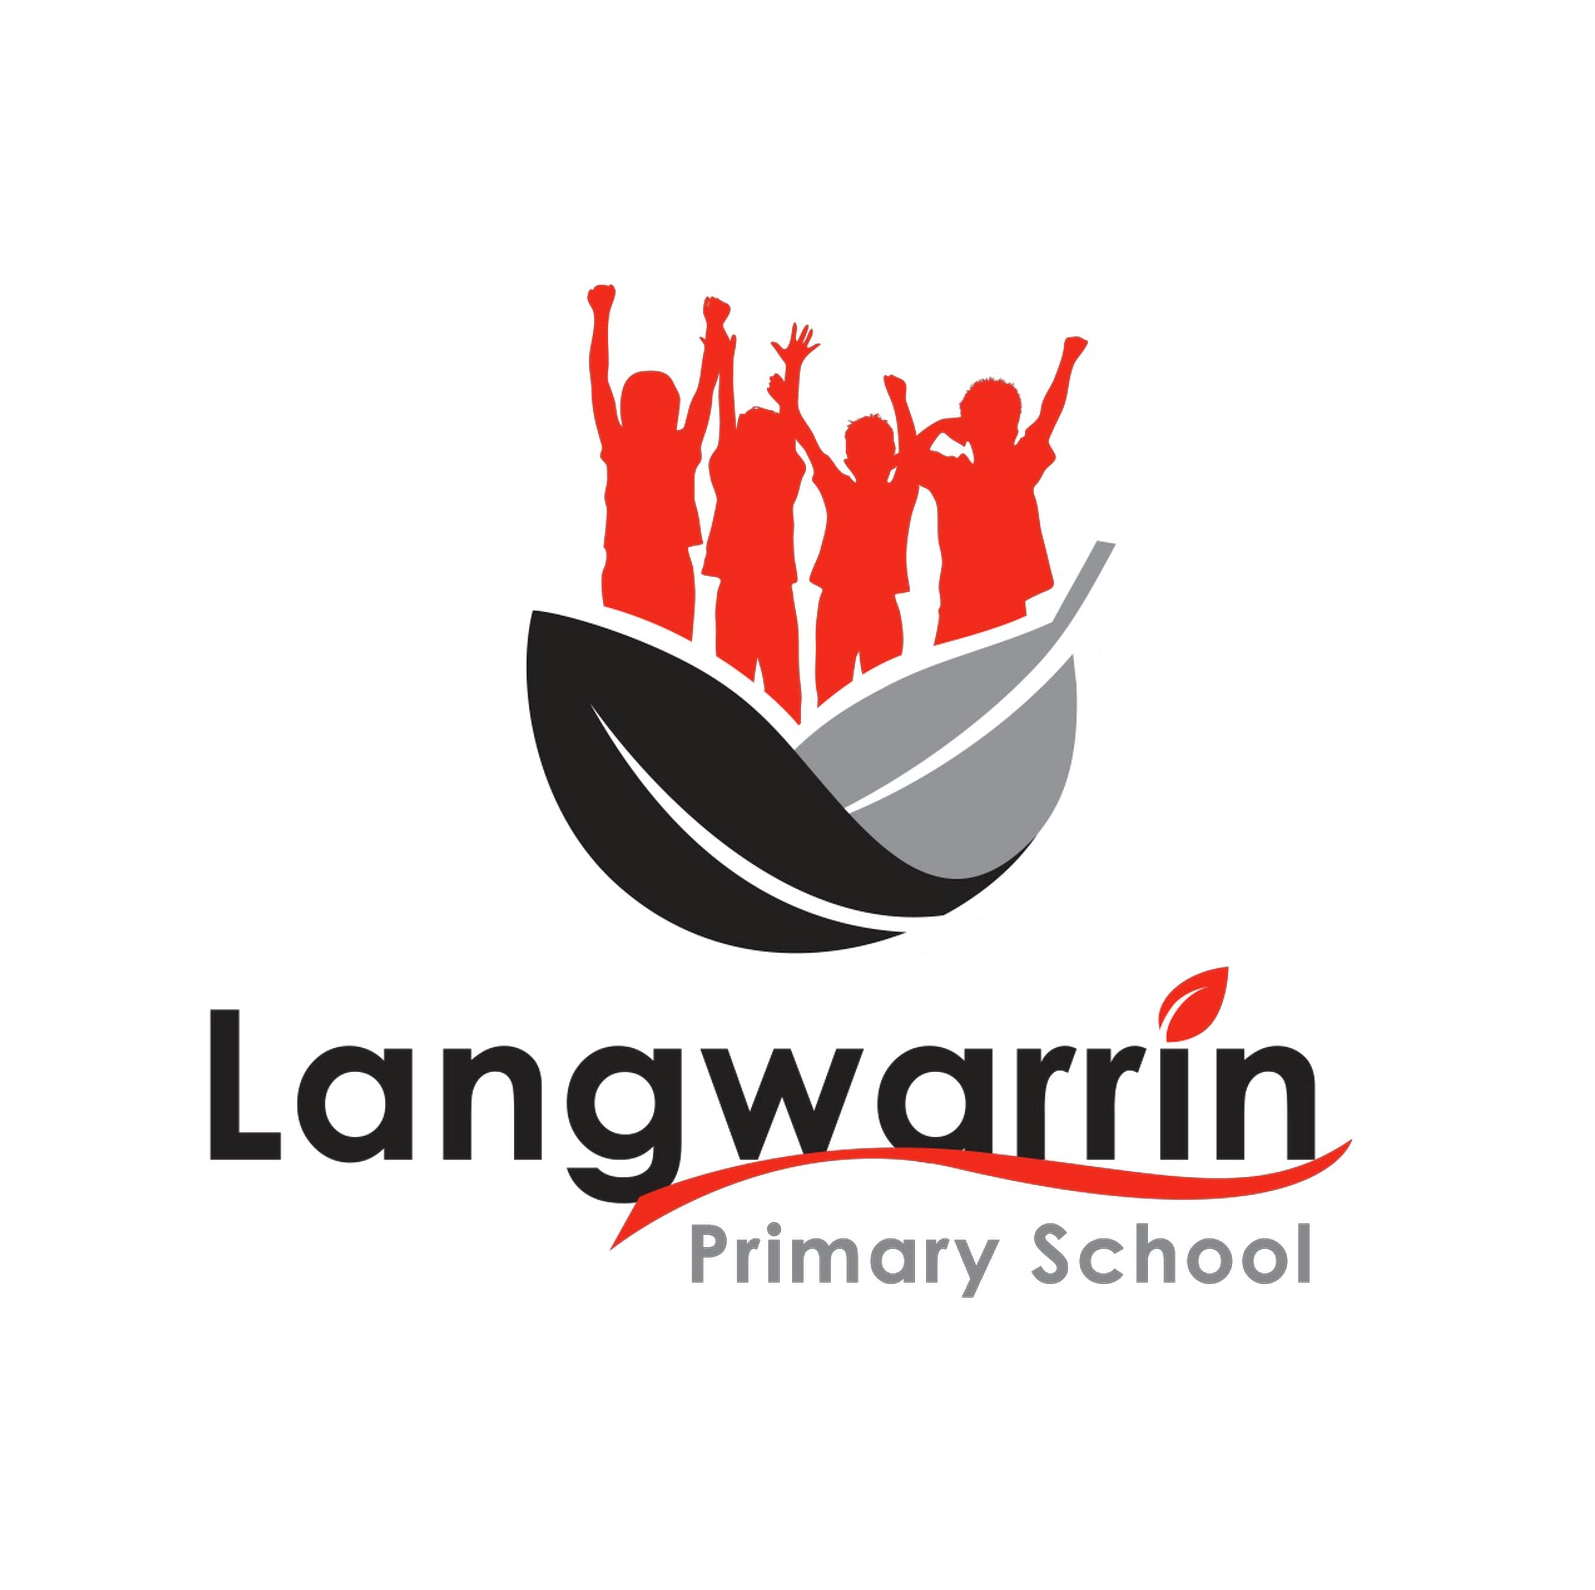 Langwarrin Primary School